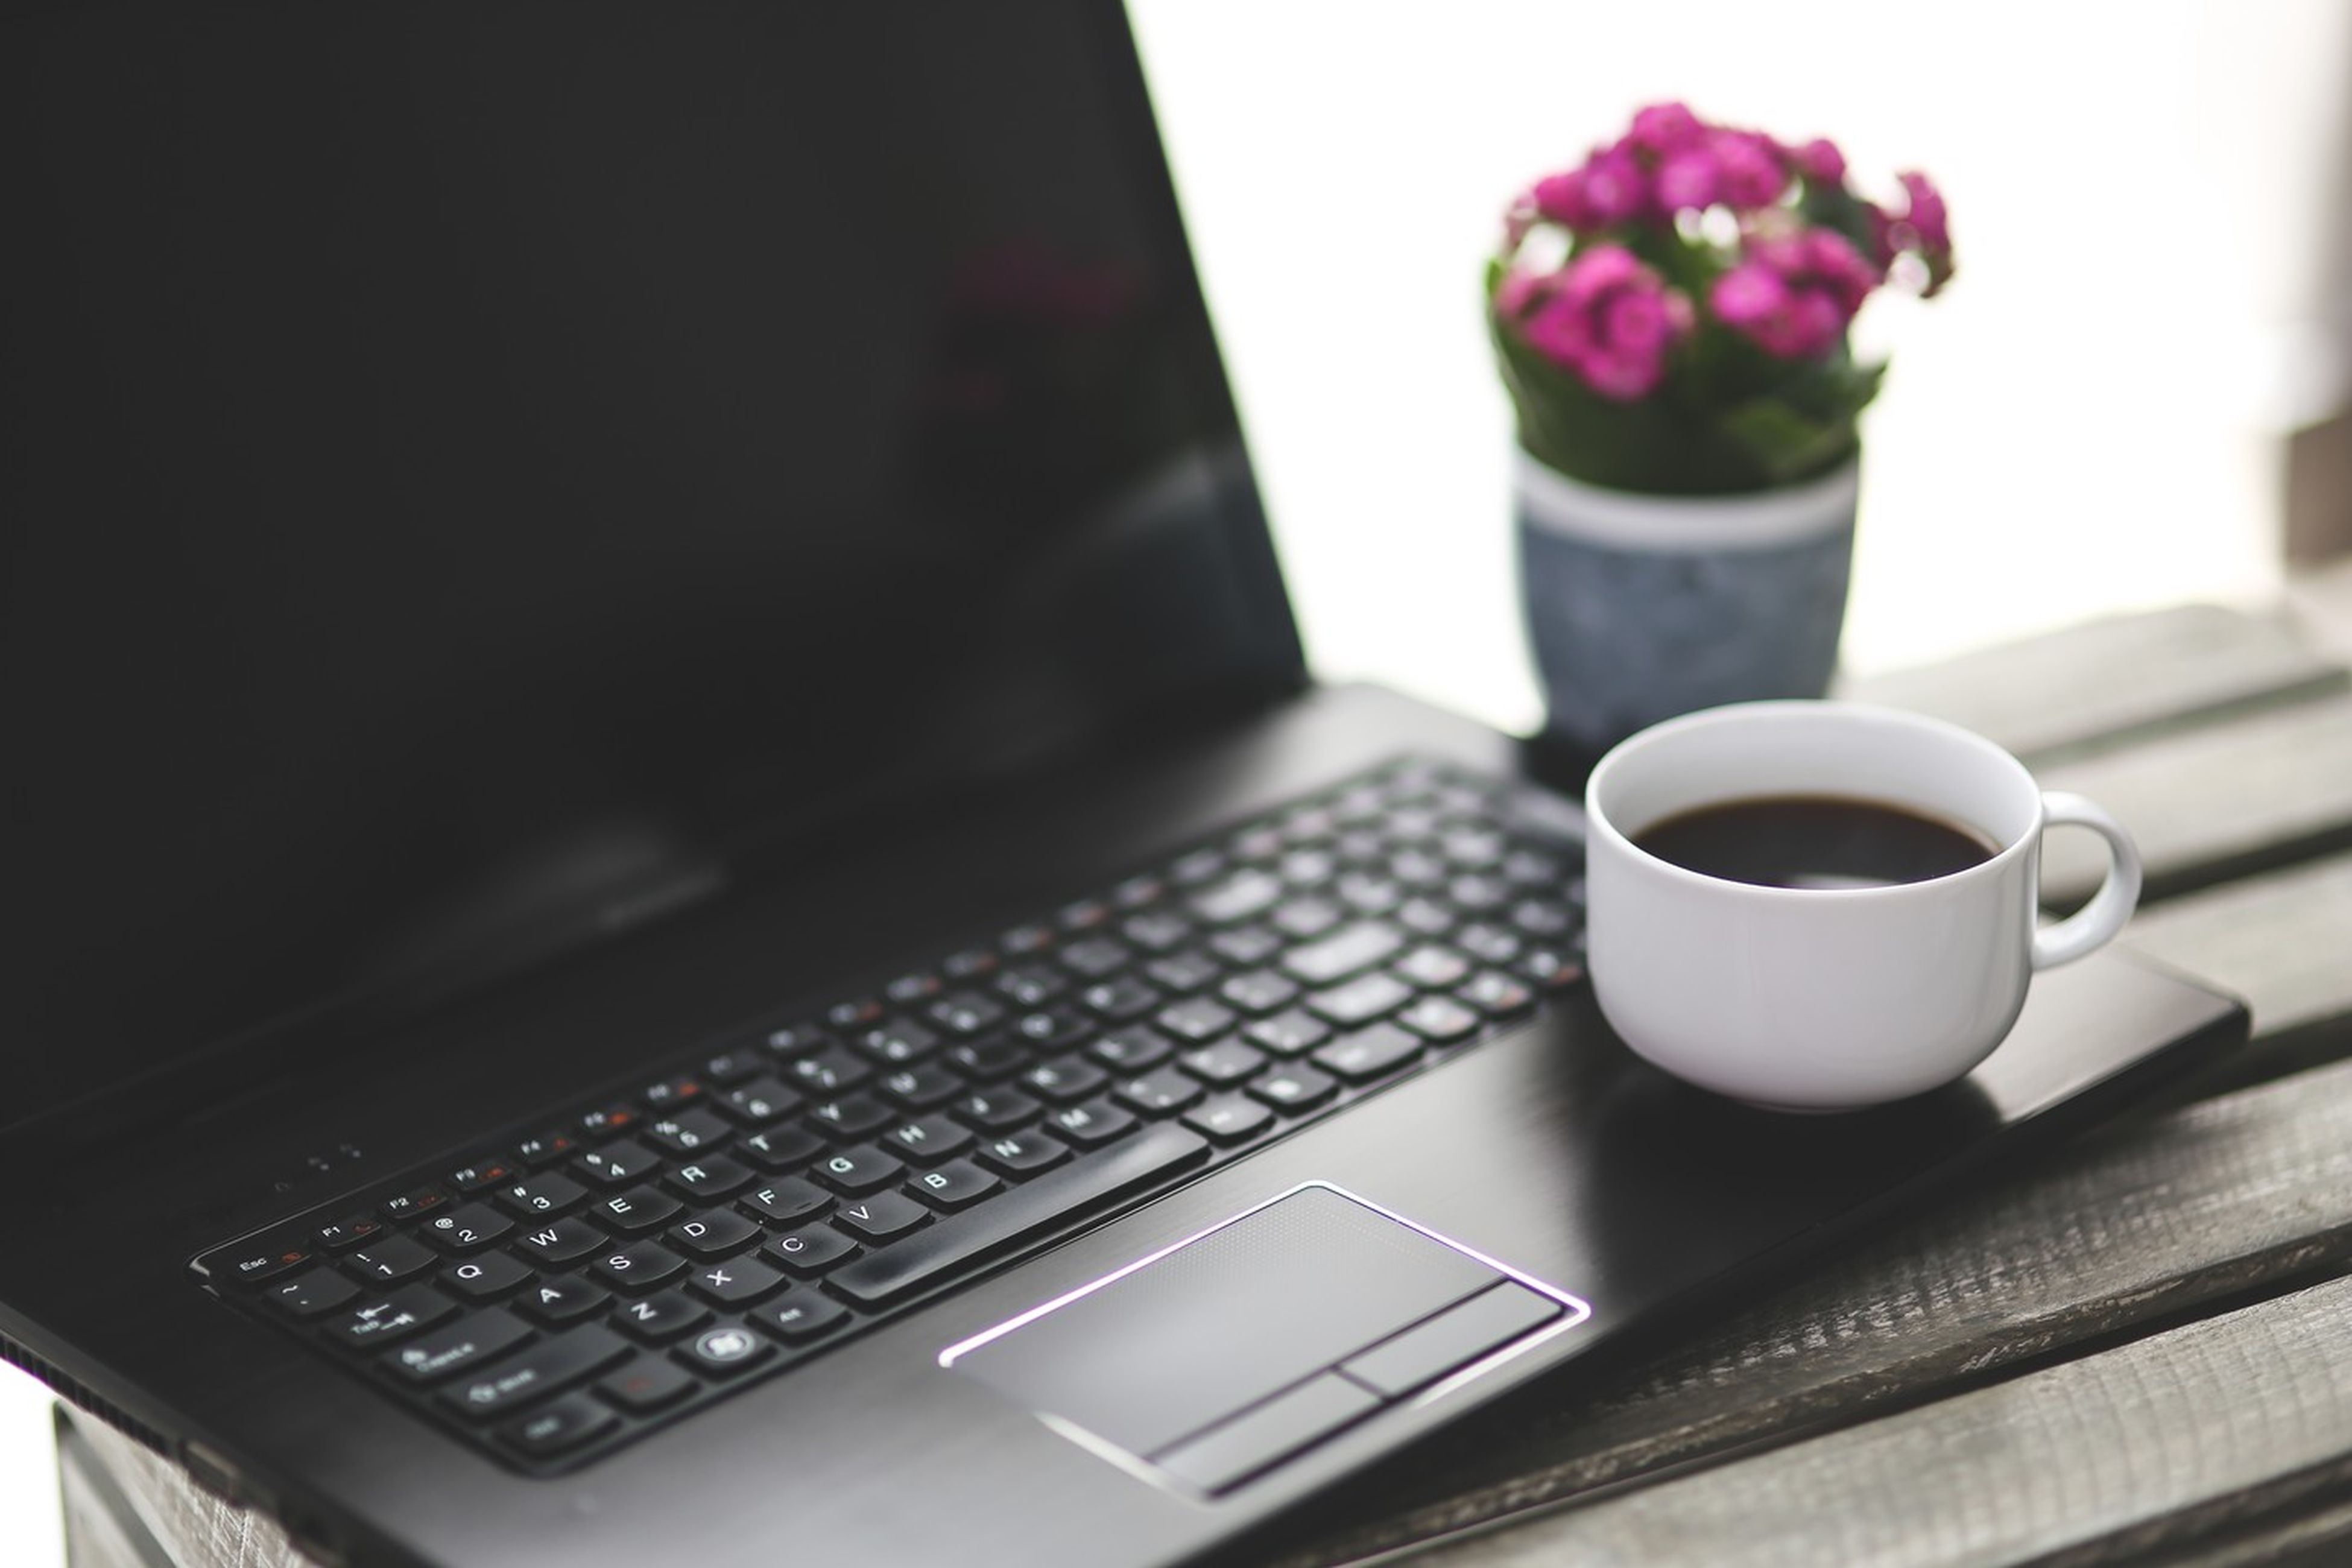 no people, table, coffee cup, technology, wireless technology, indoors, laptop, communication, computer keyboard, close-up, freshness, flower, keyboard, day